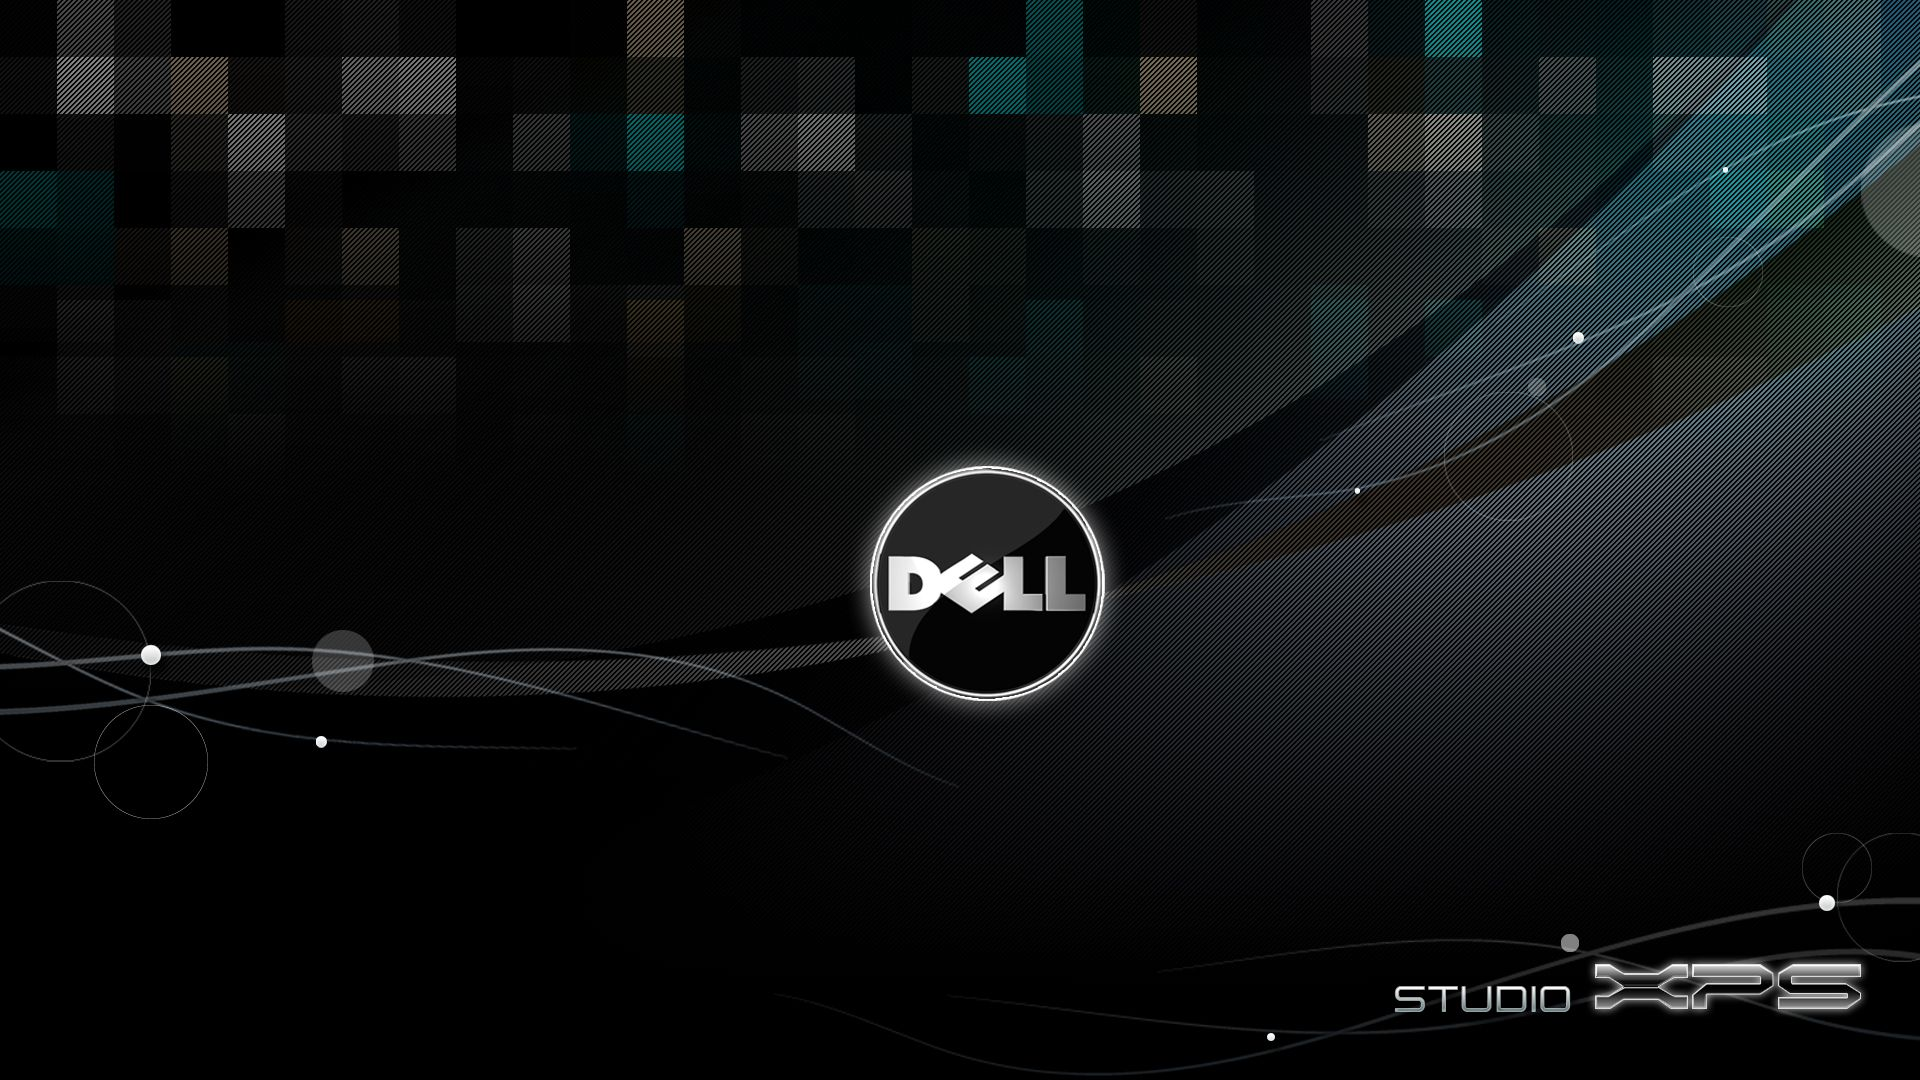 0x0 Dell Wallpapers, Fantastic Dell Pictures | 2016 4K Ultra HD ...